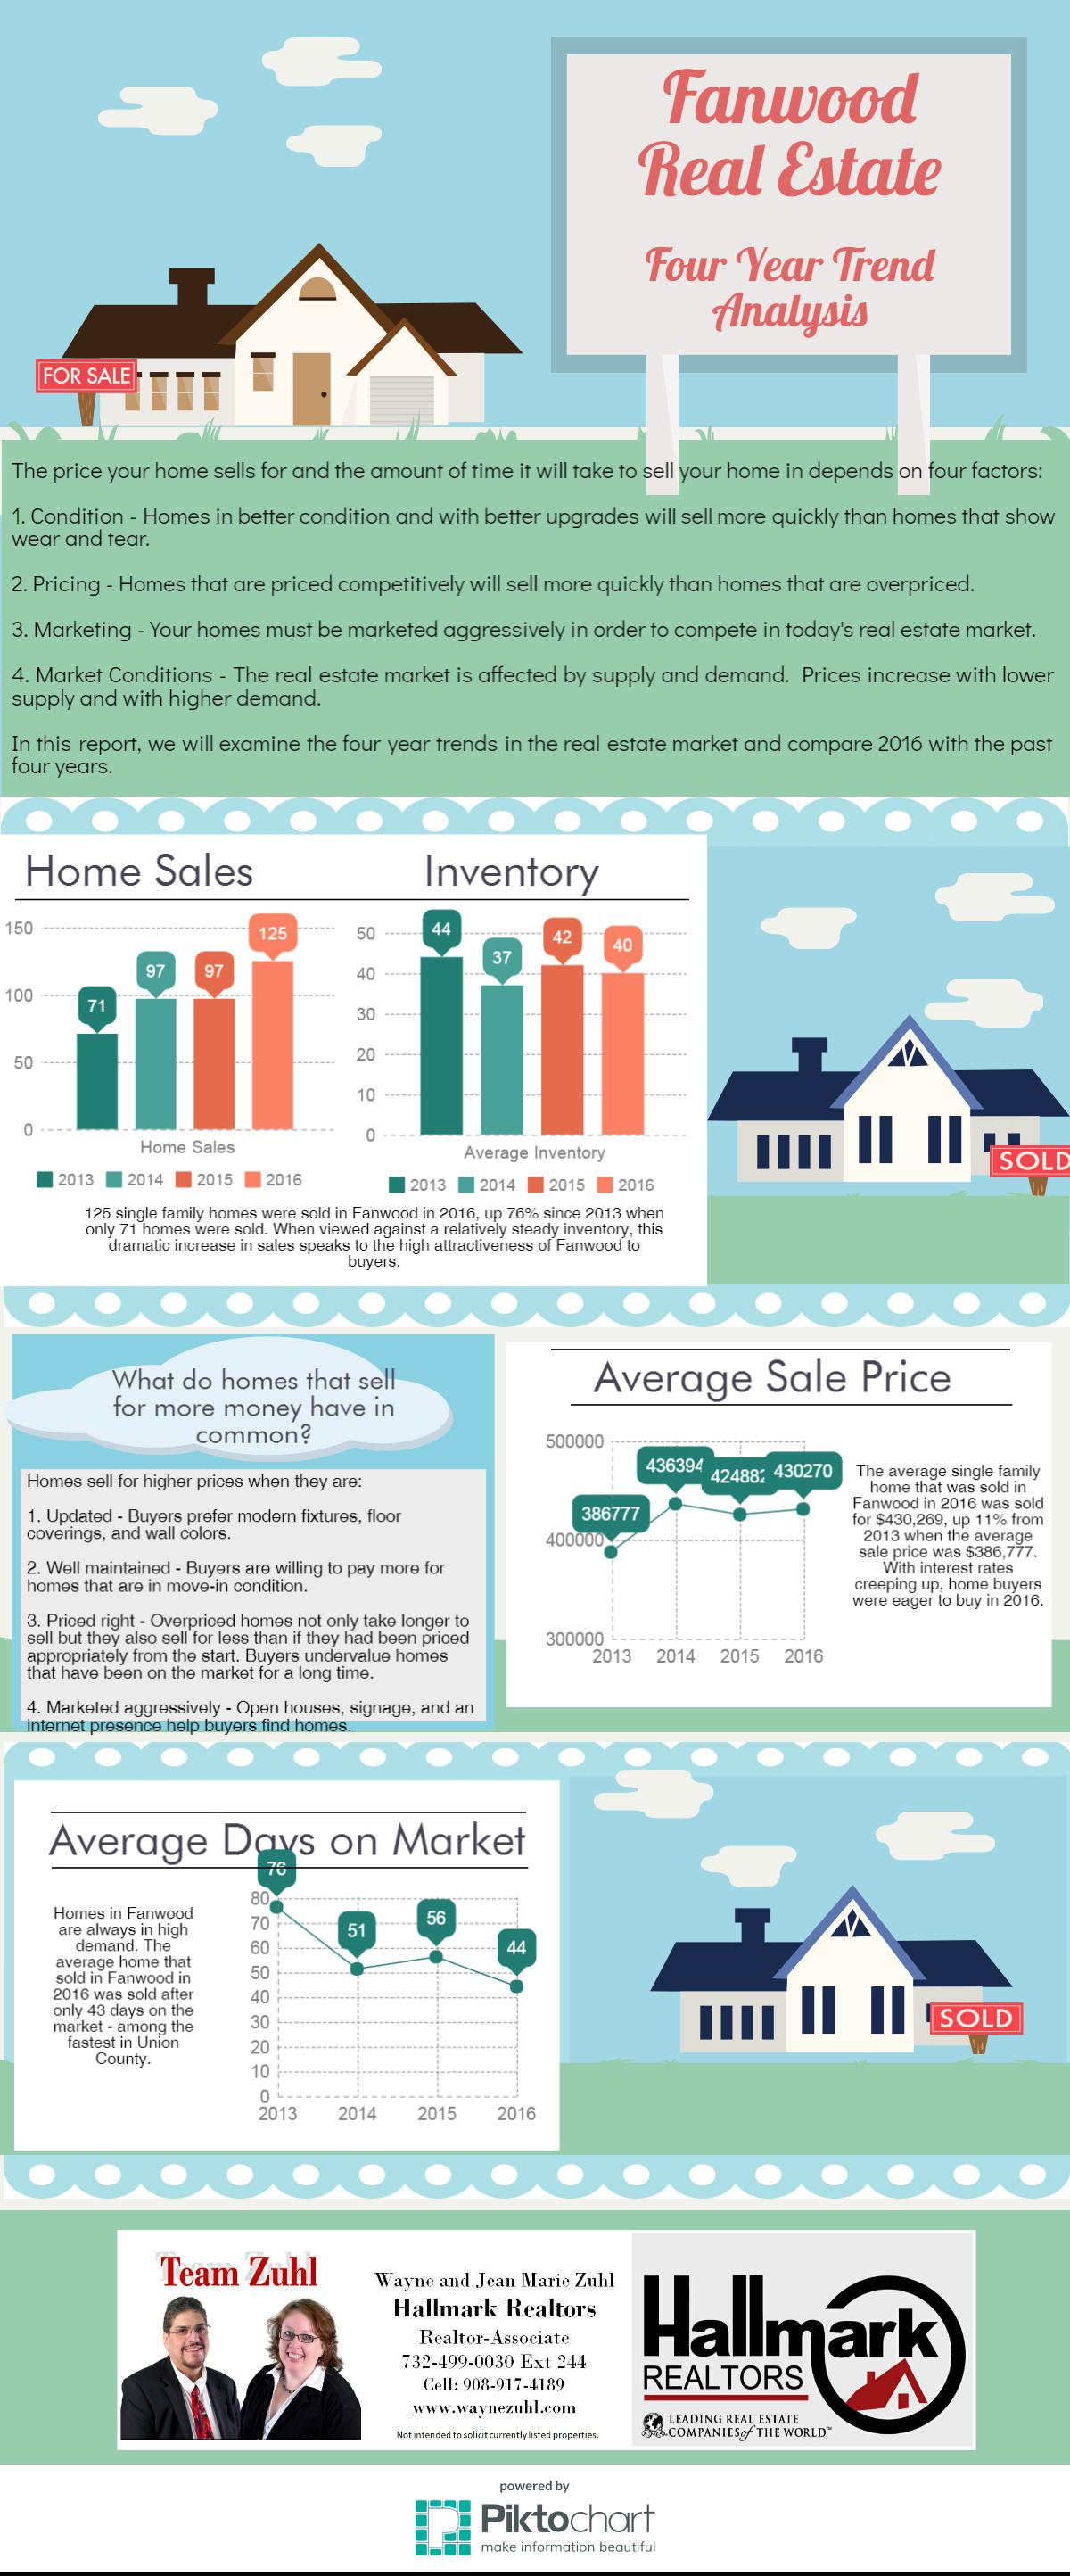 Fanwood real estate market trends 4 year analysis team zuhl for Real estate market trends